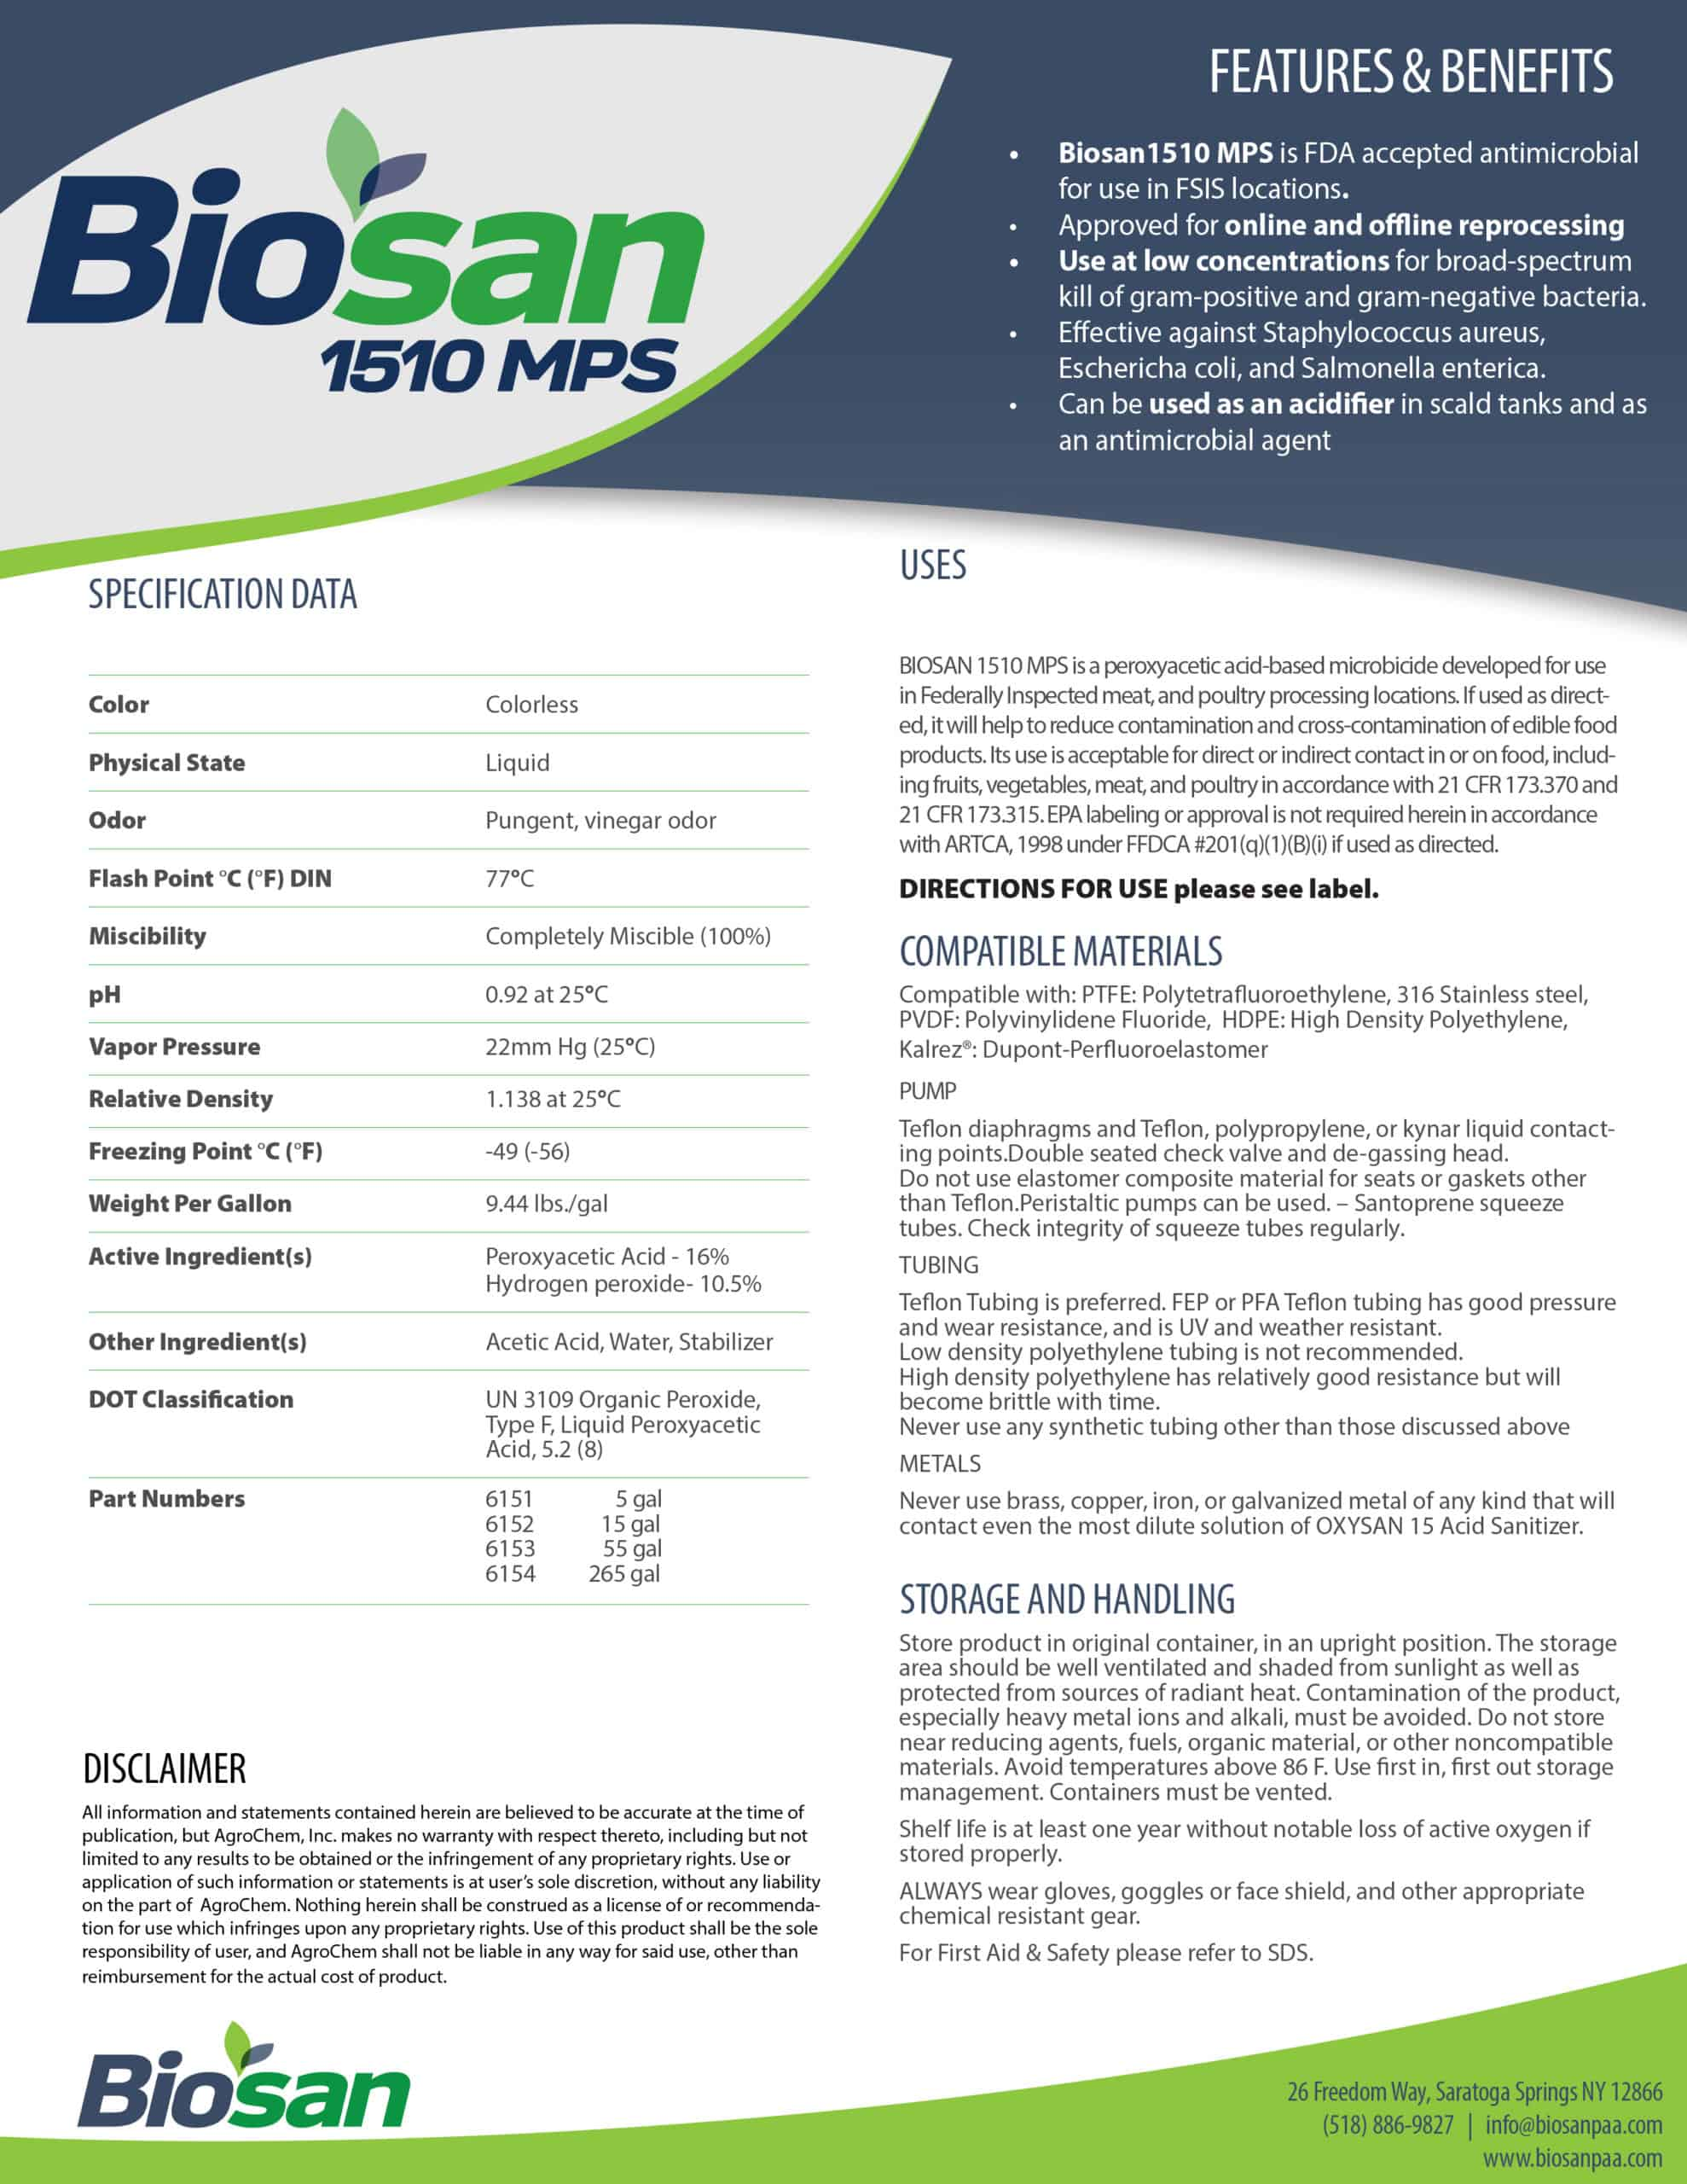 Biosan 1510 MPS Data Sheet